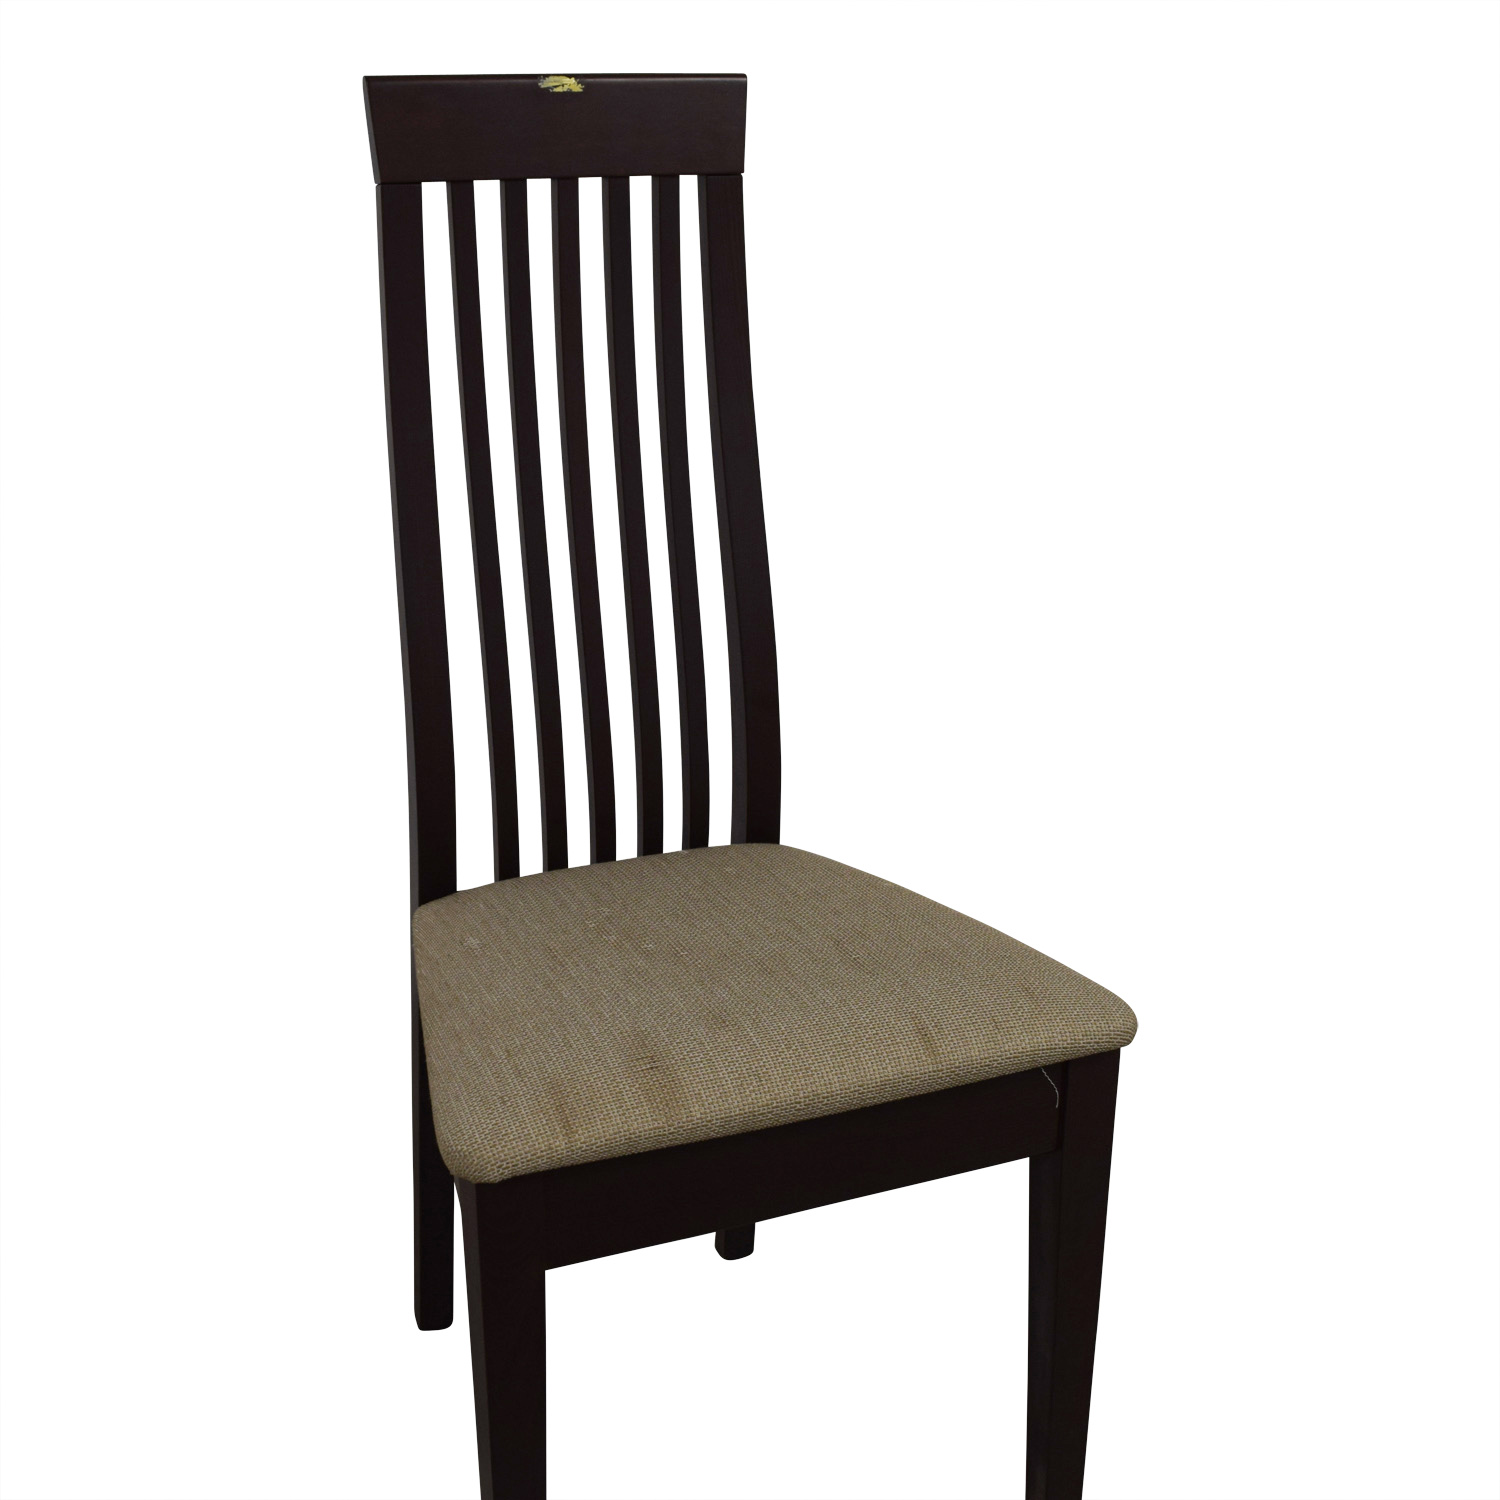 Wood Vertical Slat Back with Tan Cushioned Chair Dining Chairs